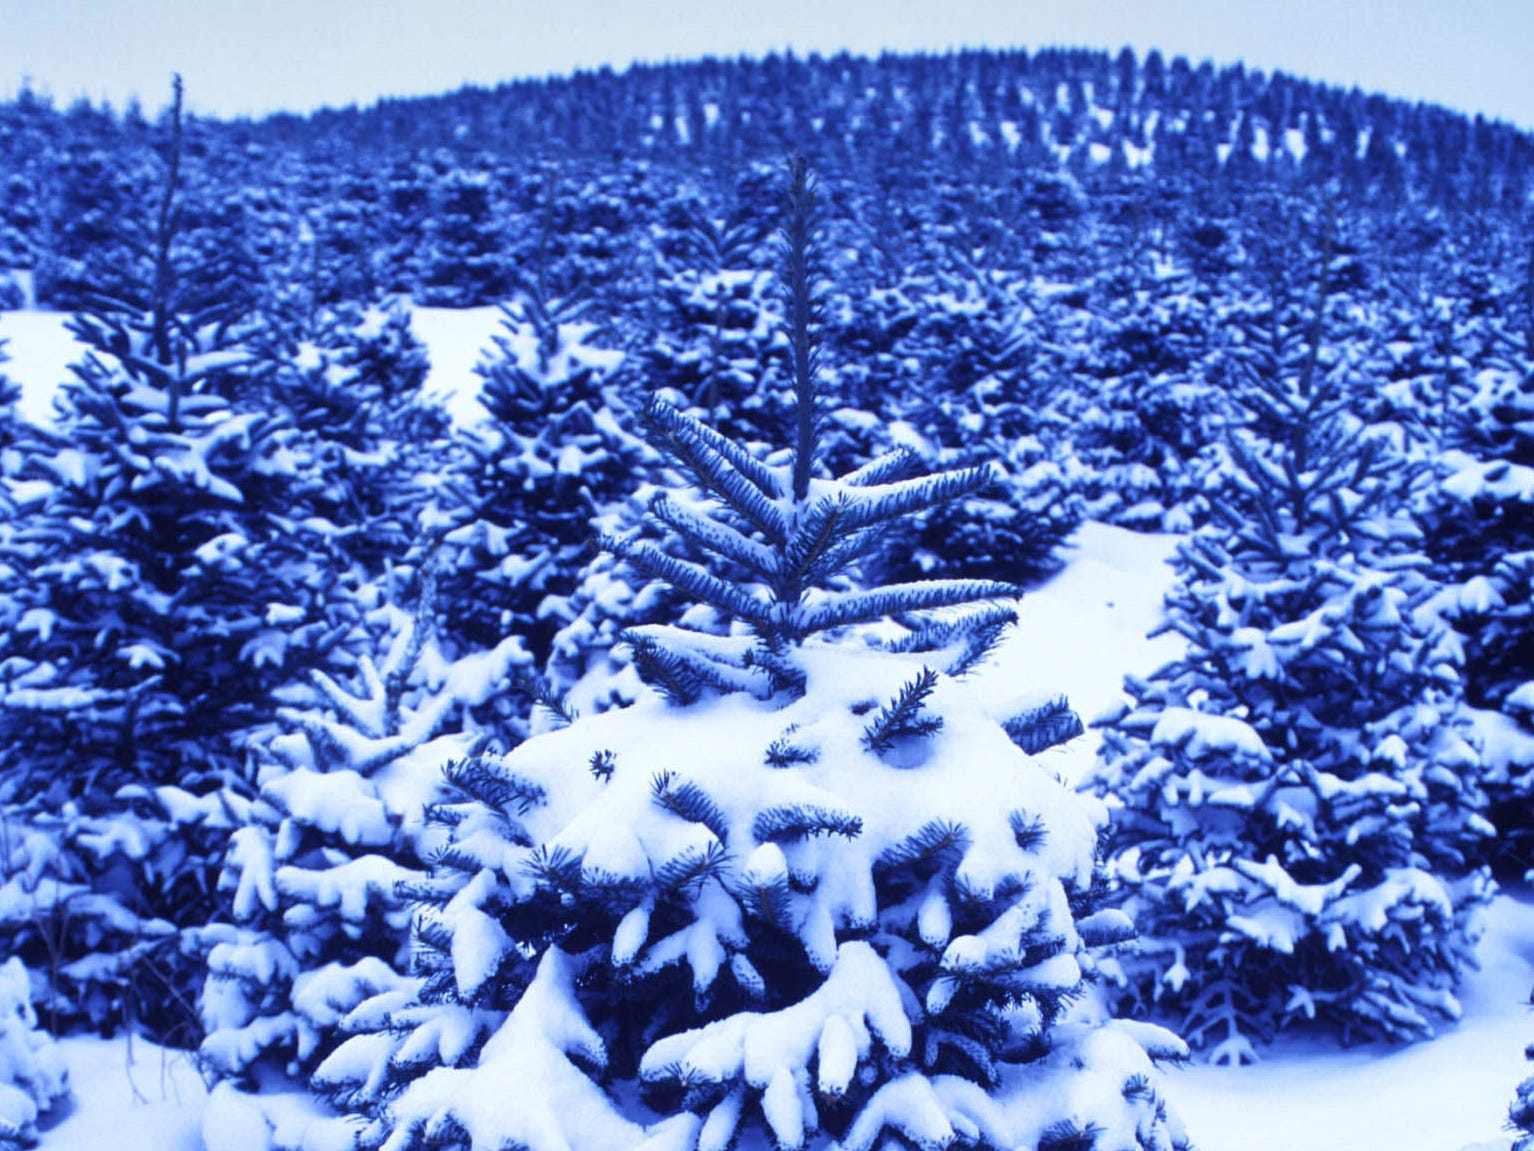 Choose-and-cut season continues until Christmas. But snow can close rural and major roads to tree farms once winter arrives.